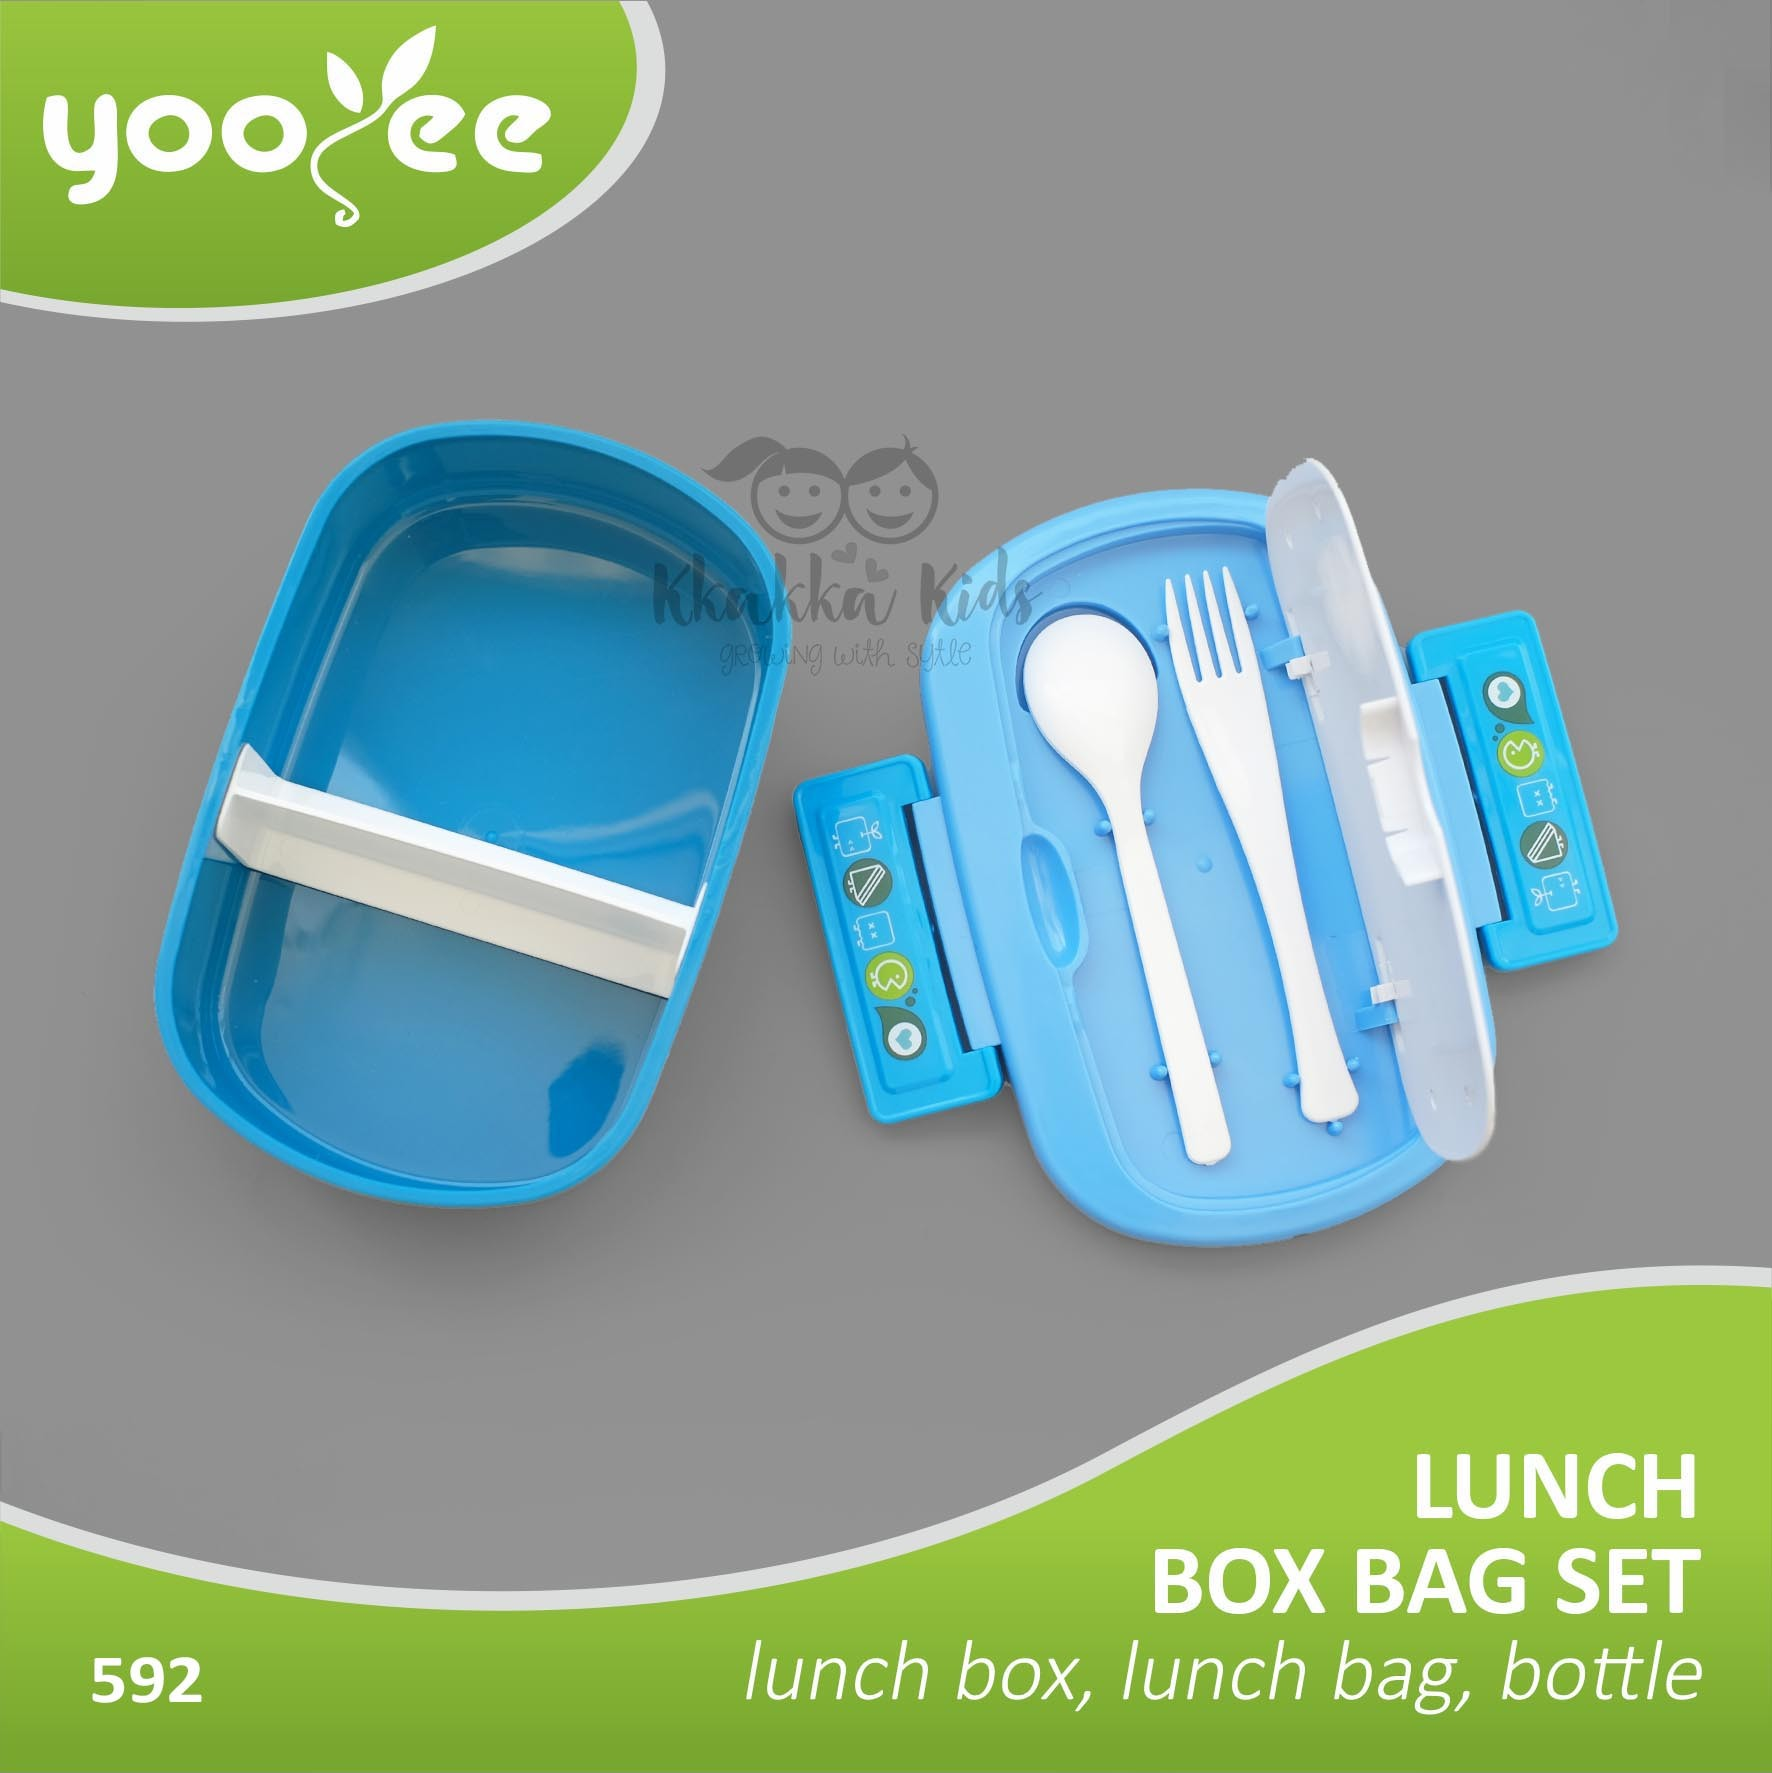 Tempat Jual Lunch Box Yooyee Update 2018 Kotak Makan 4 Sekat Sup Item 415 Bag Setleak Proof Water Bottle Kkakkakids Kkakkababy